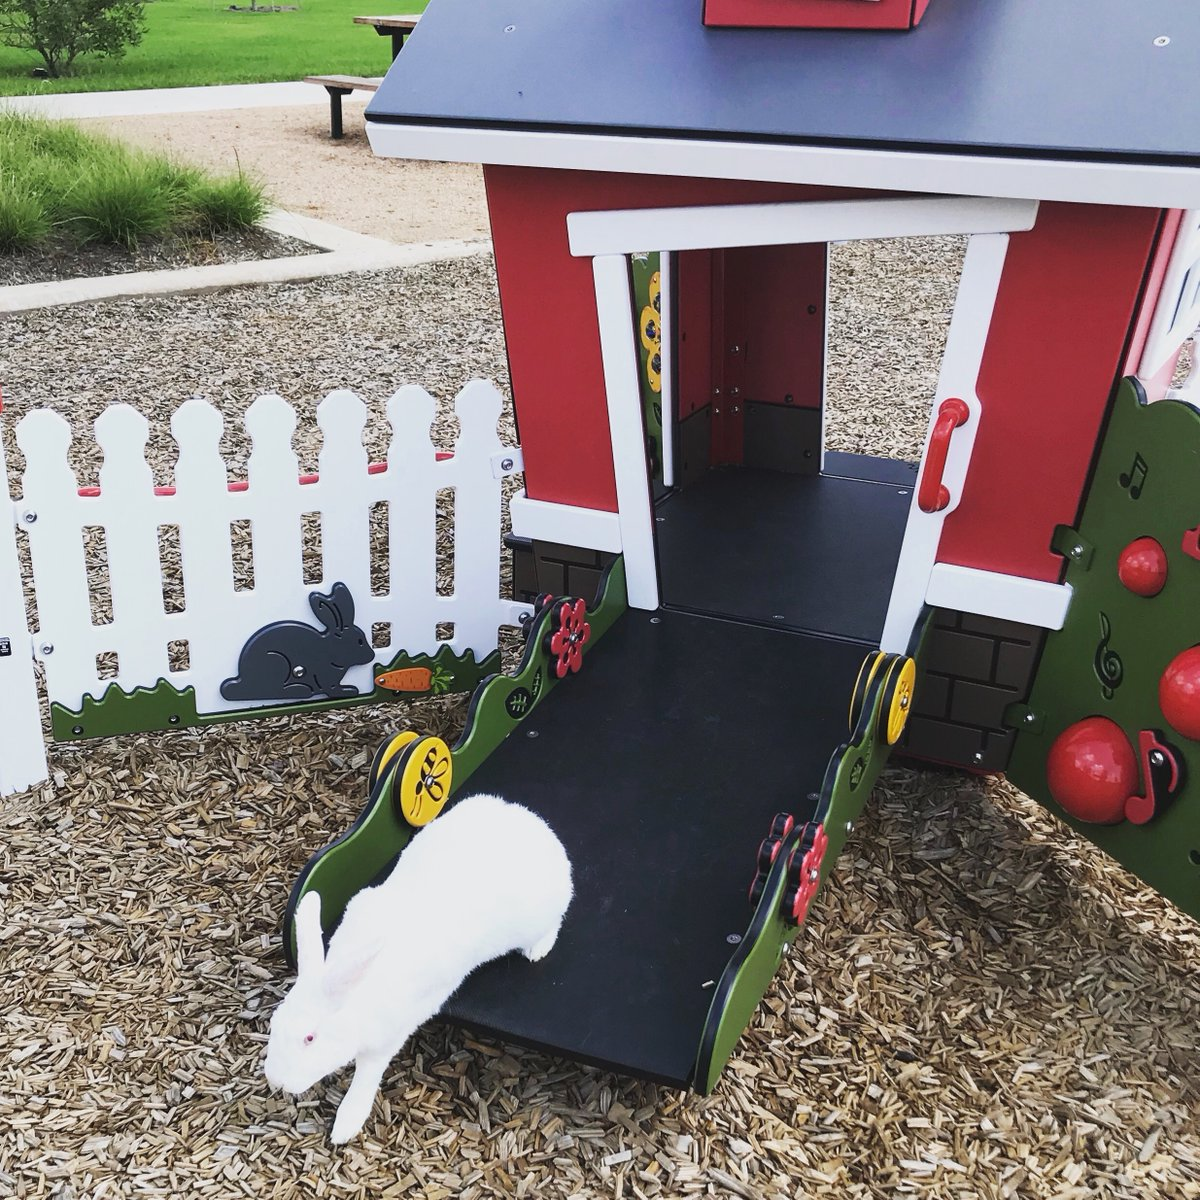 Fred is rushing off to work, from his little play house at #HarvestGreen! #houston #rabbit #rabbits #bunny #bunnies #houstonevents #richmondtx #fortbendpic.twitter.com/99yHQRe5jg